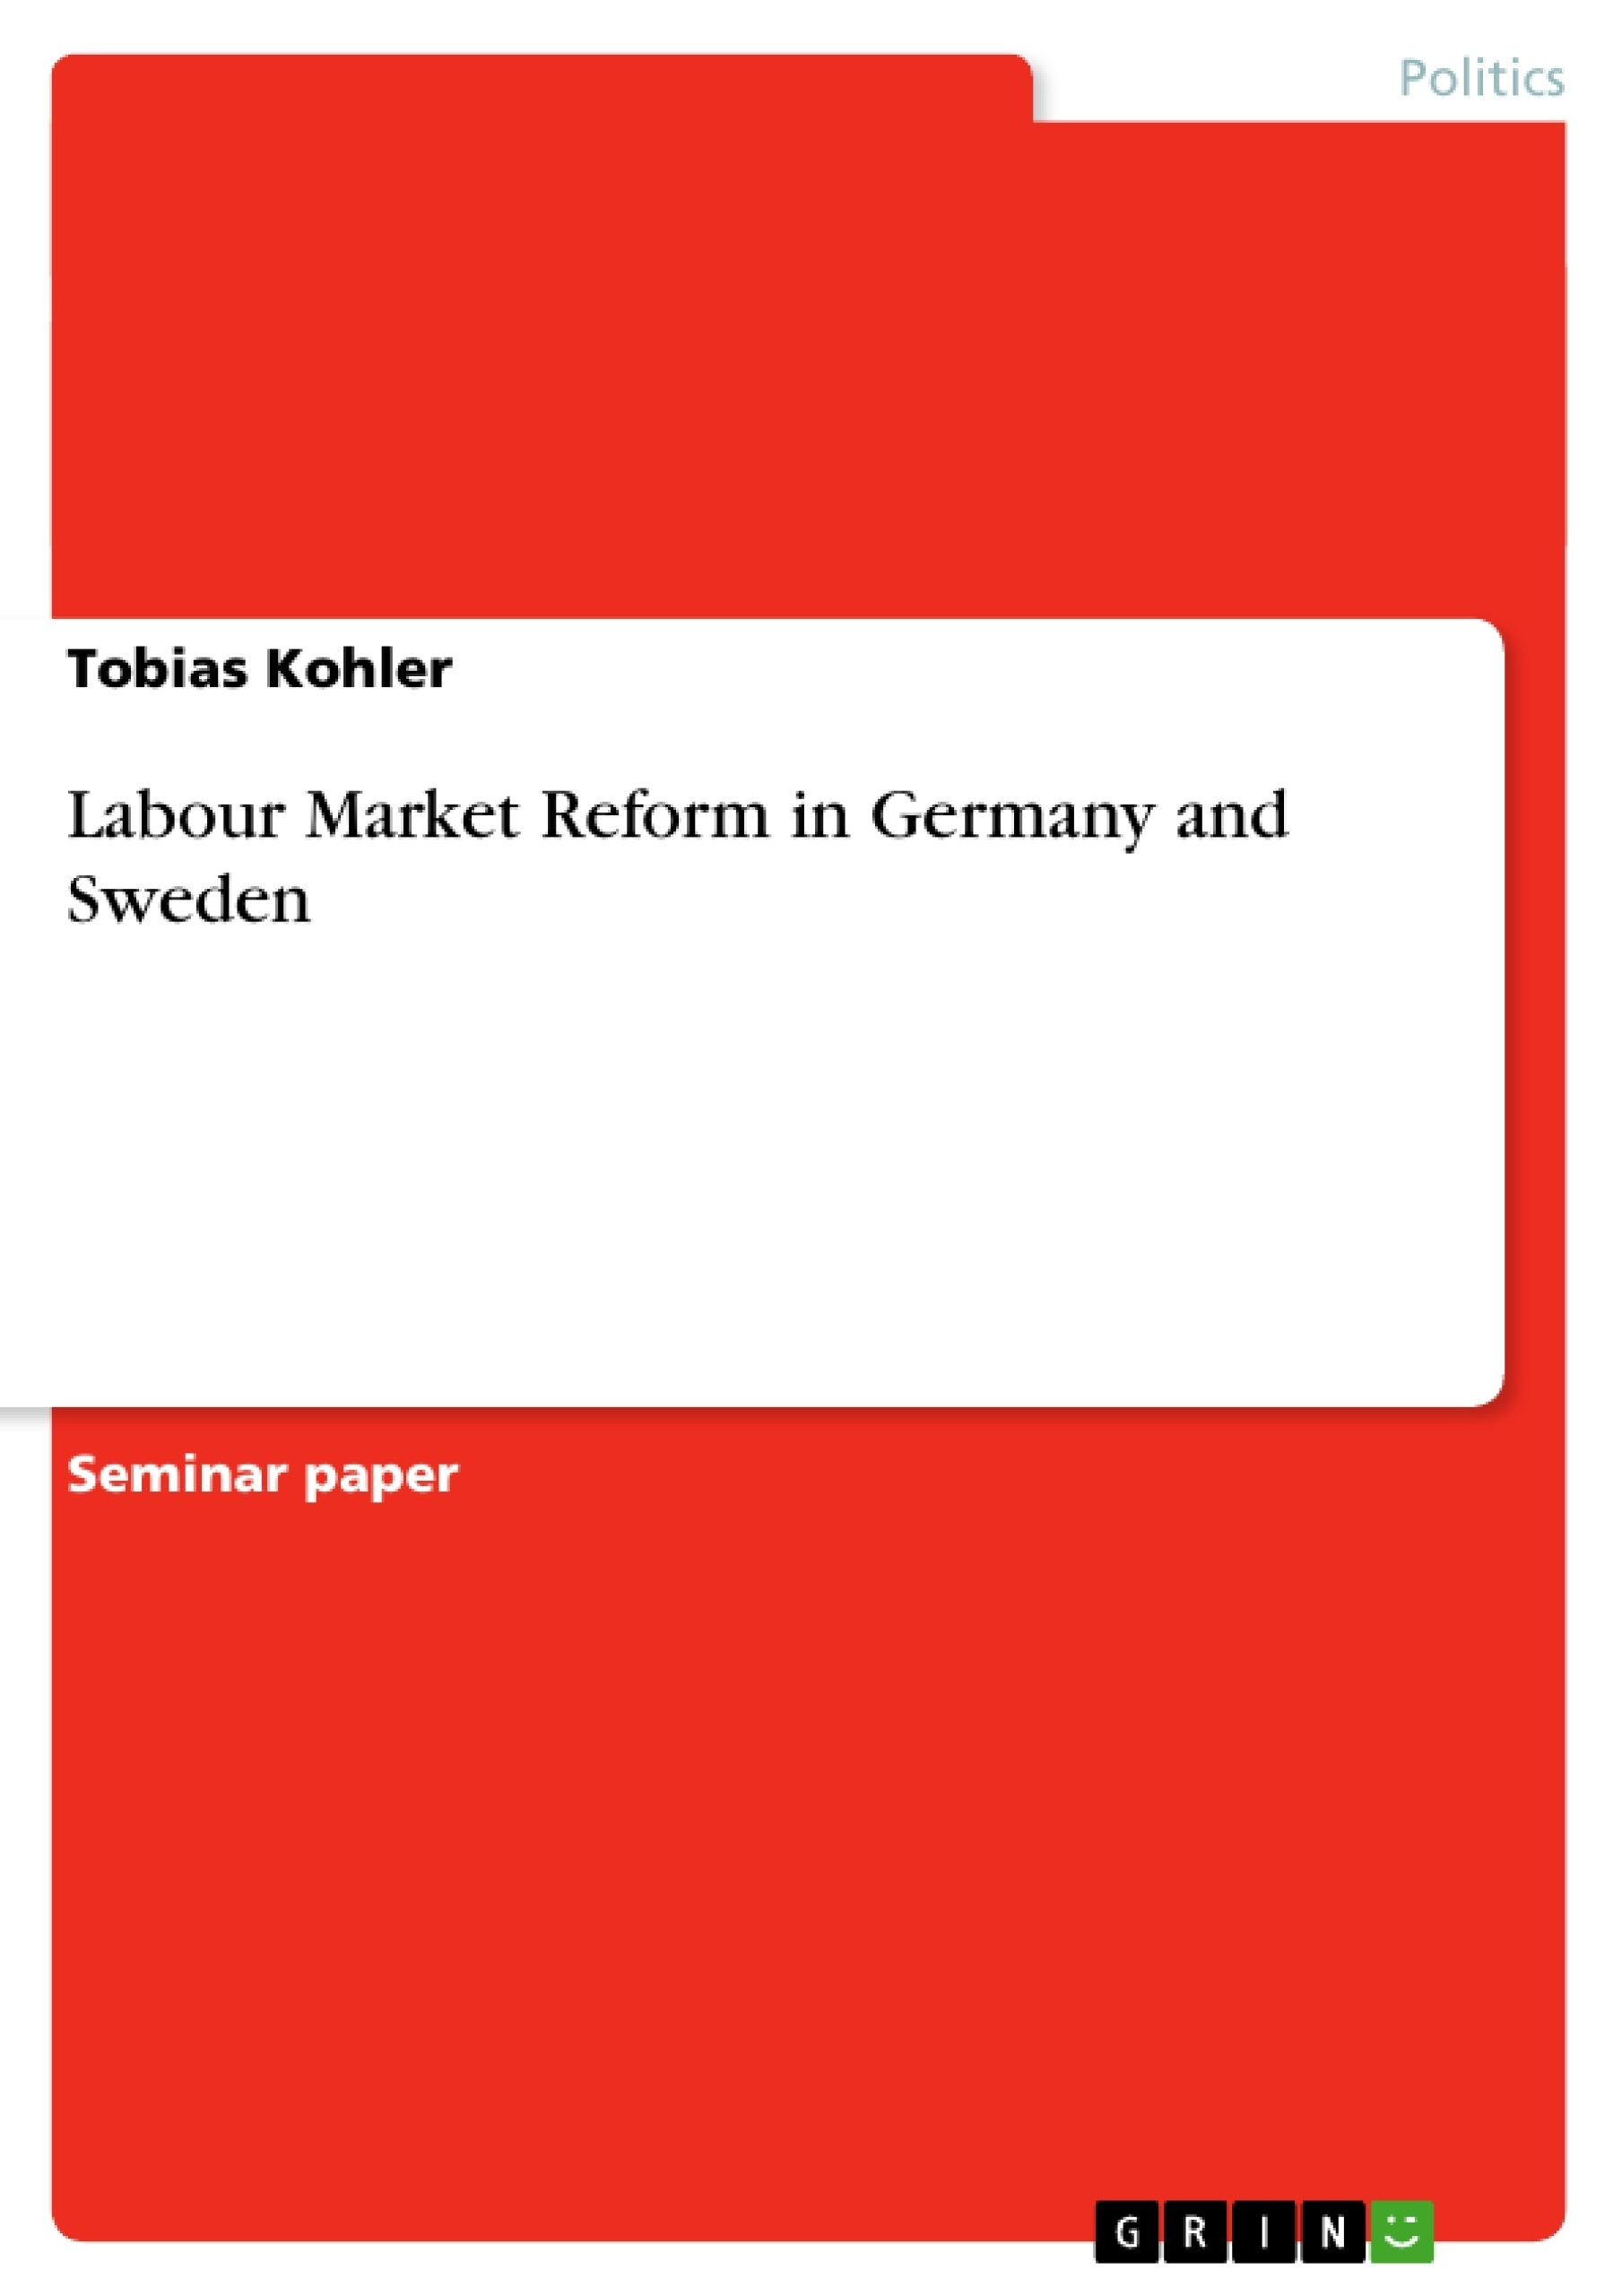 Title: Labour Market Reform in Germany and Sweden